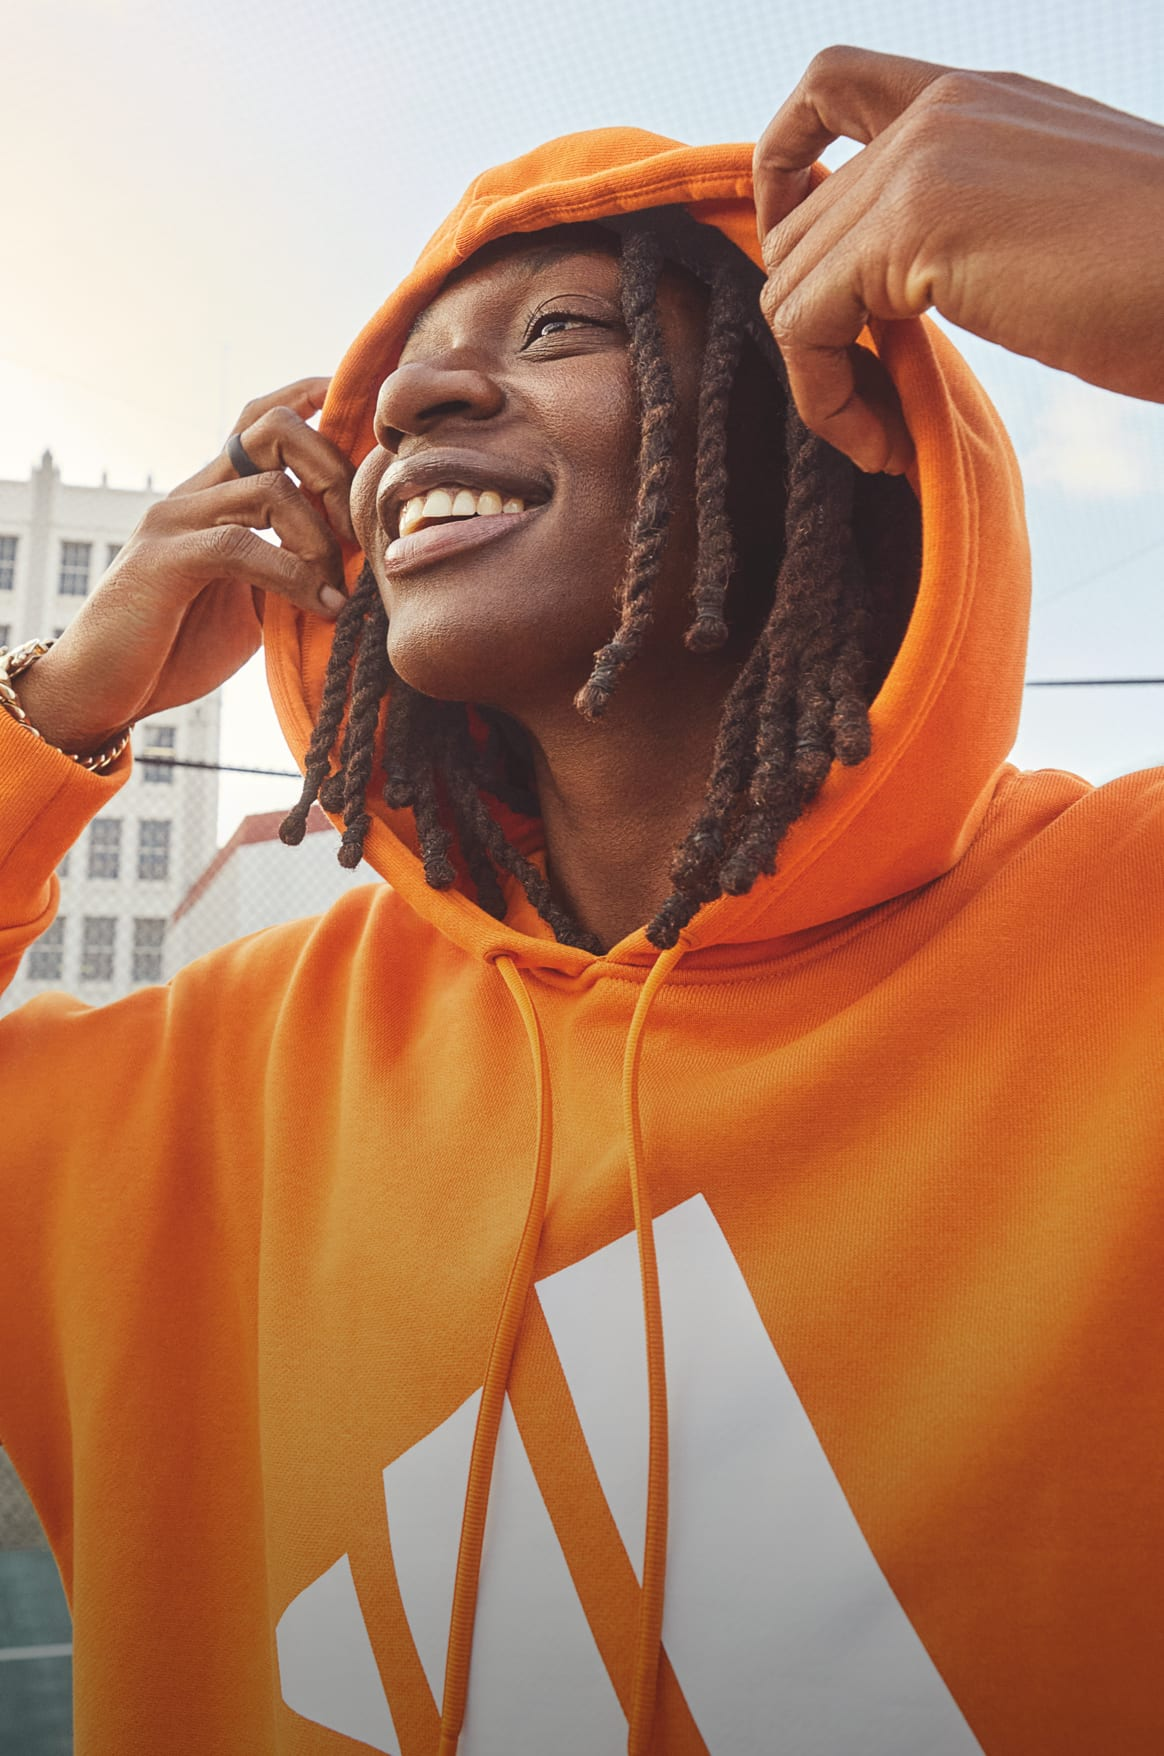 WNBA star Erica Wheeler smiles as she pulls her orange adidas hoody away from her face.